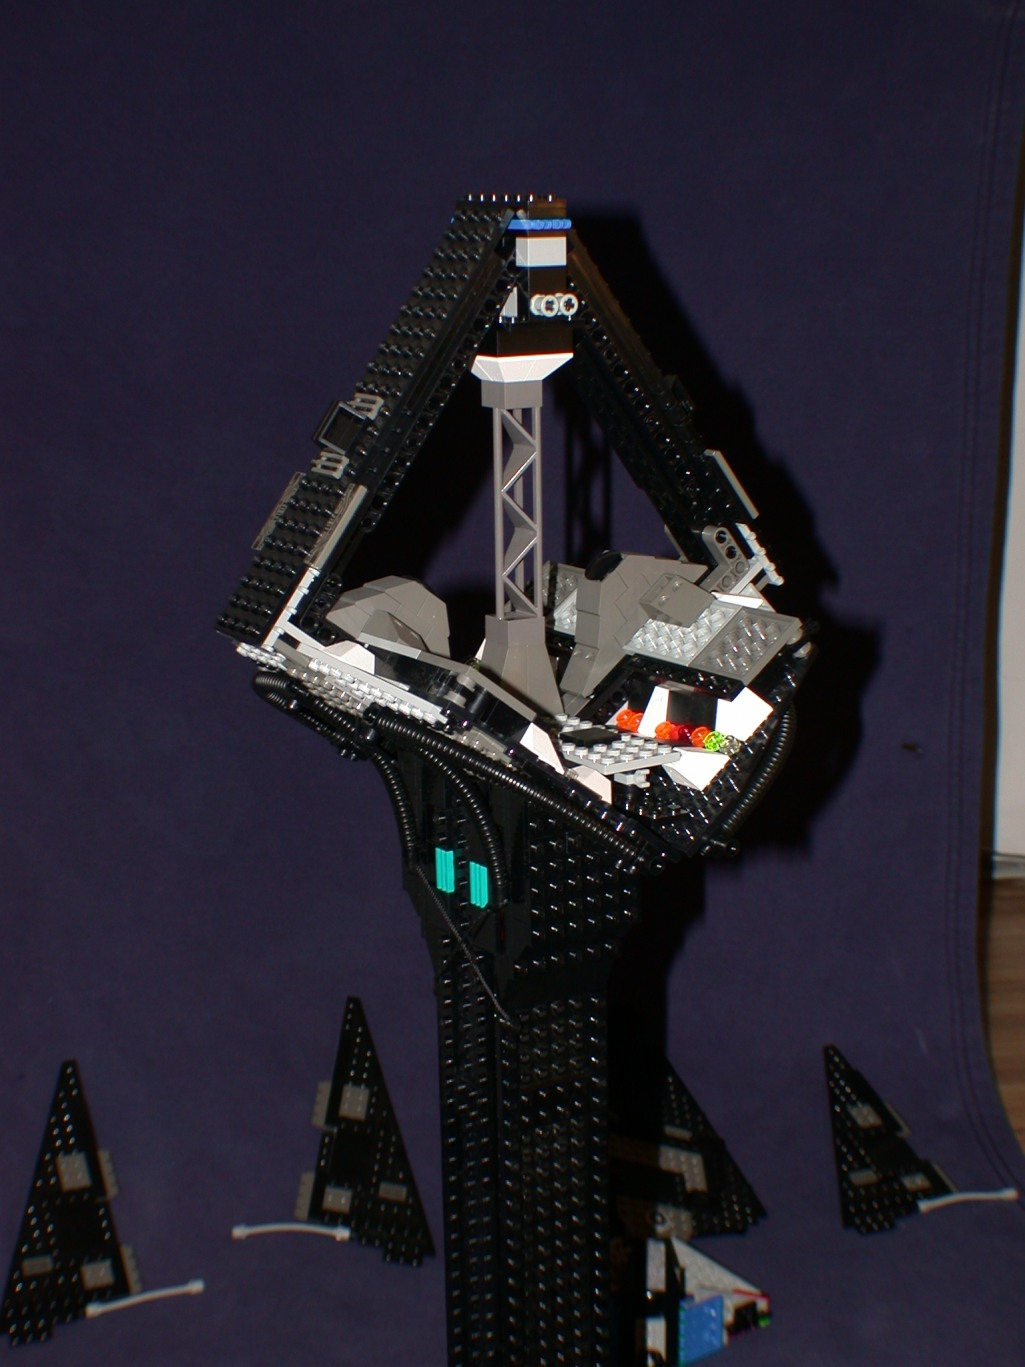 Dscn0672 from LEGO Space Mother Ship GallaghersArt_dscn0672.jpg